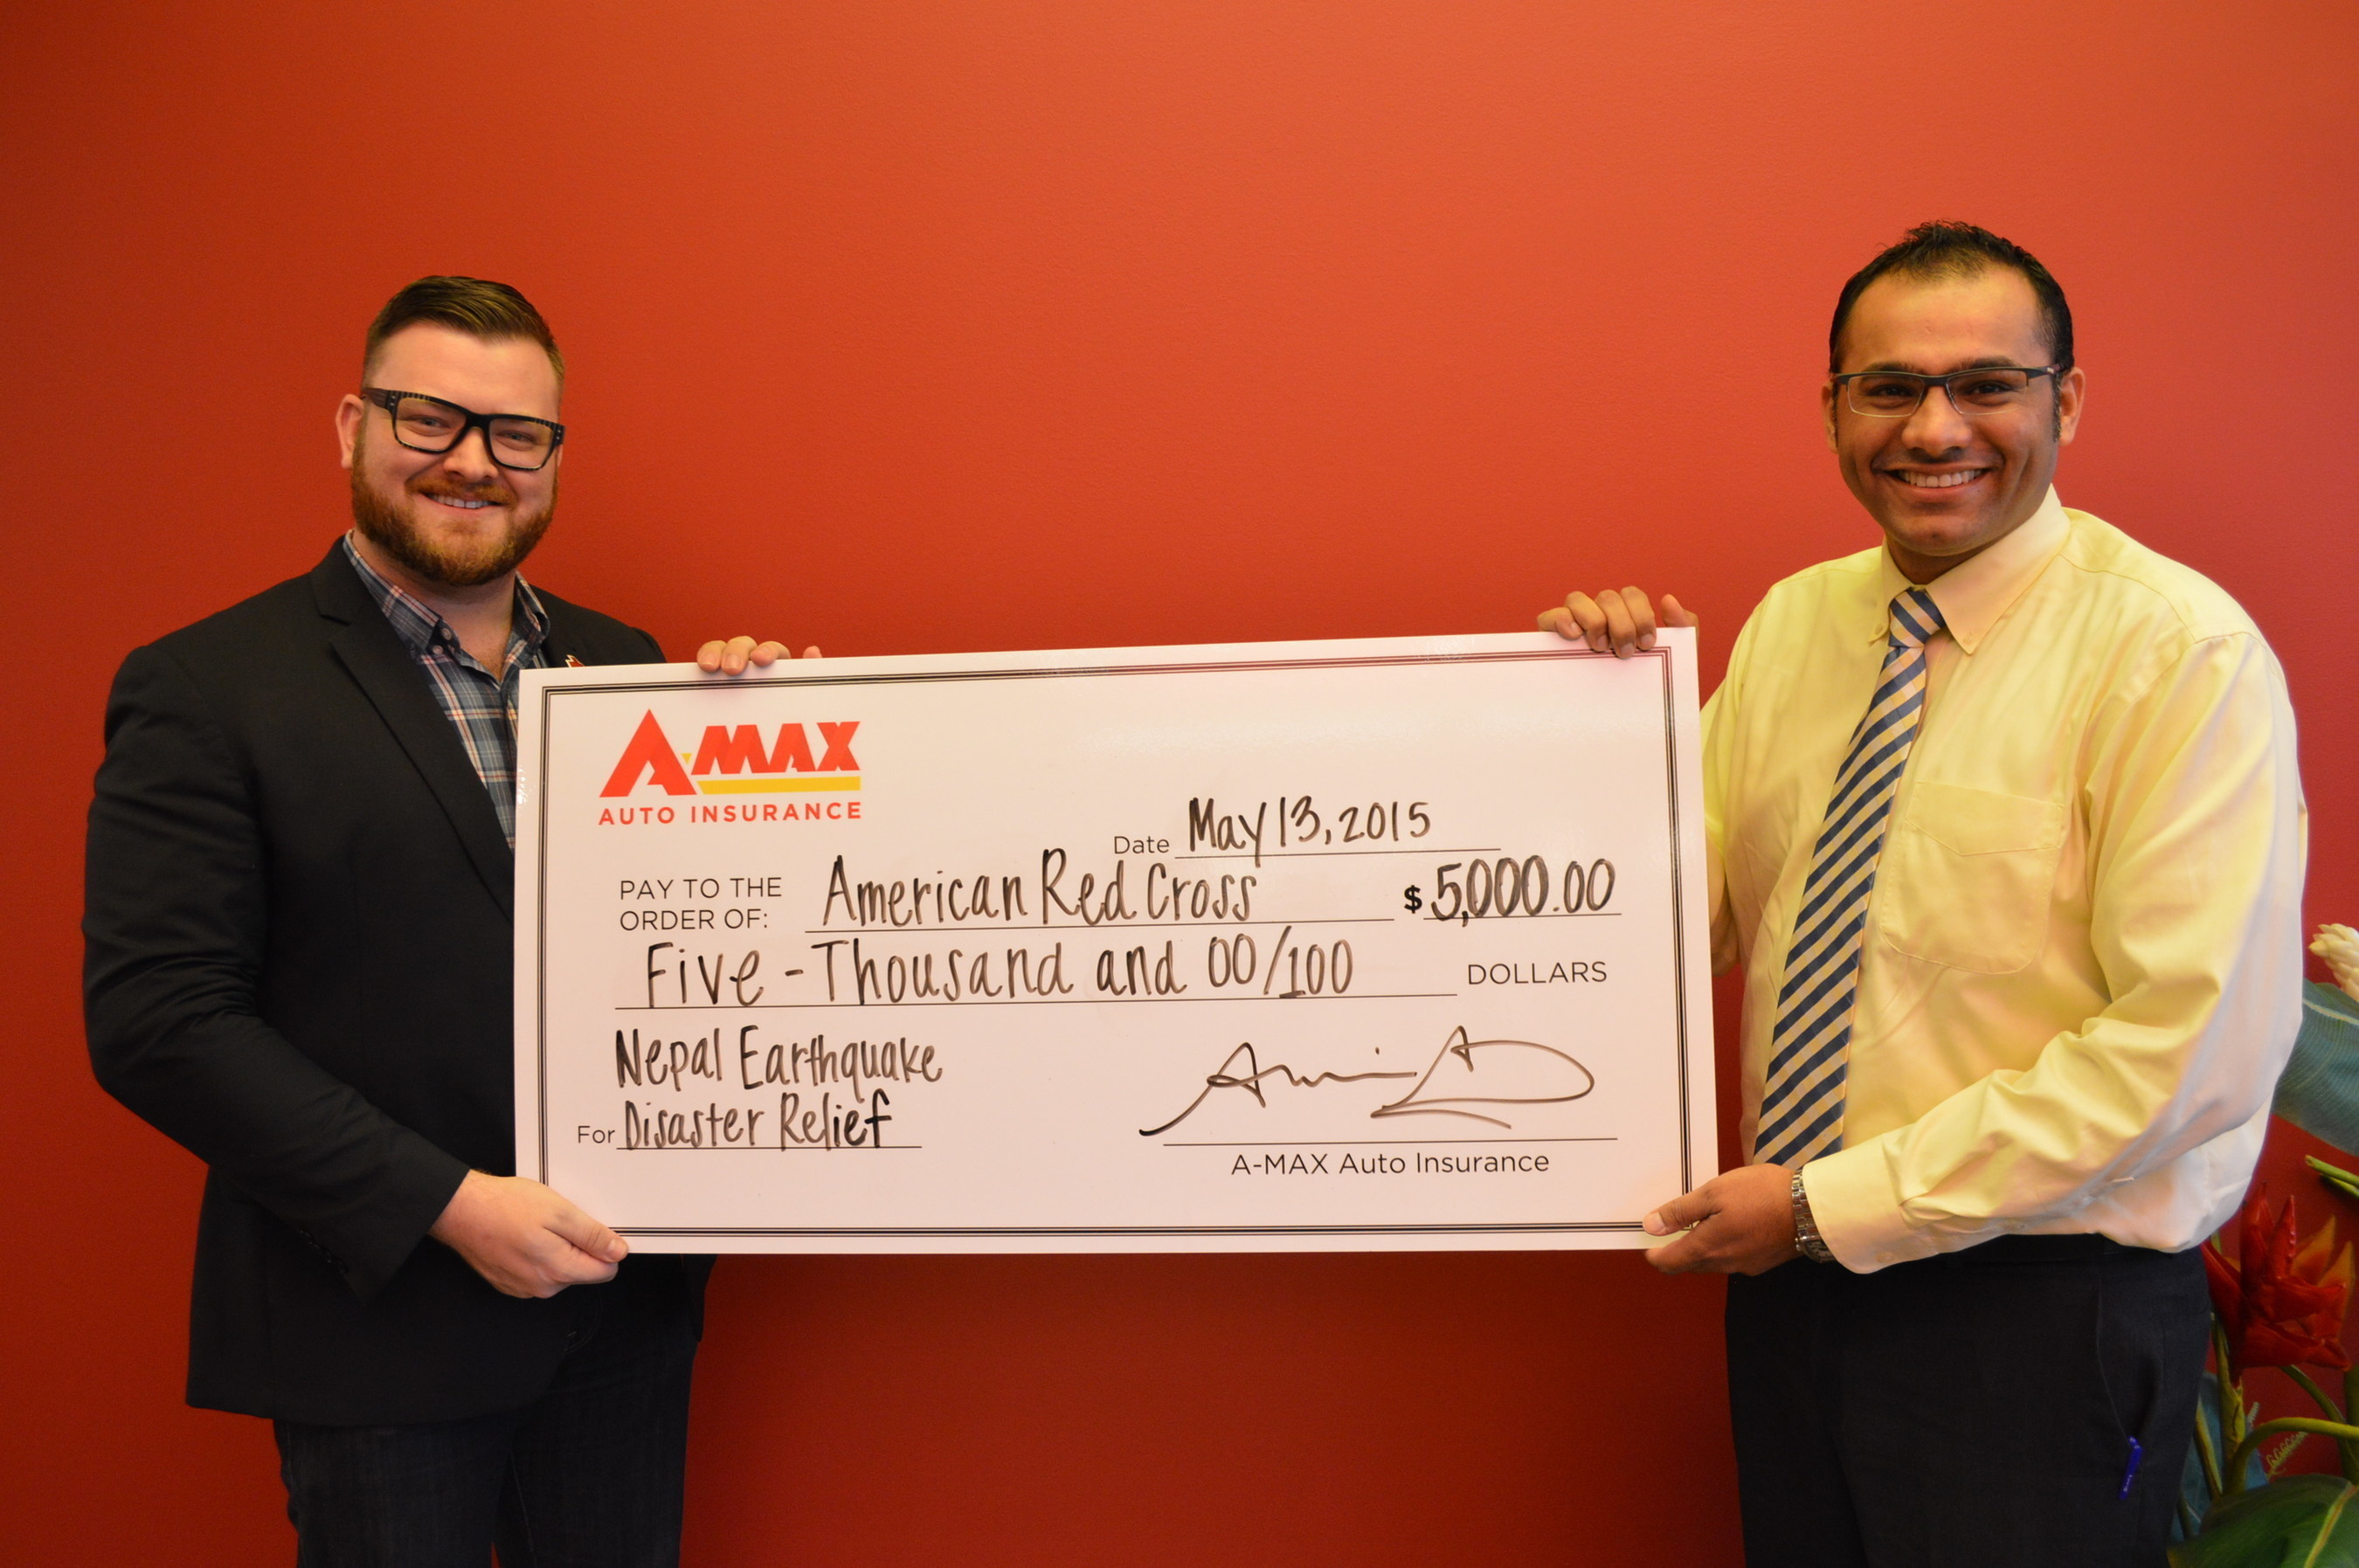 Nash Hariyani (right), development manager at A-MAX Auto Insurance, presents a $5,000 donation to Zach Hess (left), corporate partnerships officer at American Red Cross North Texas Region.